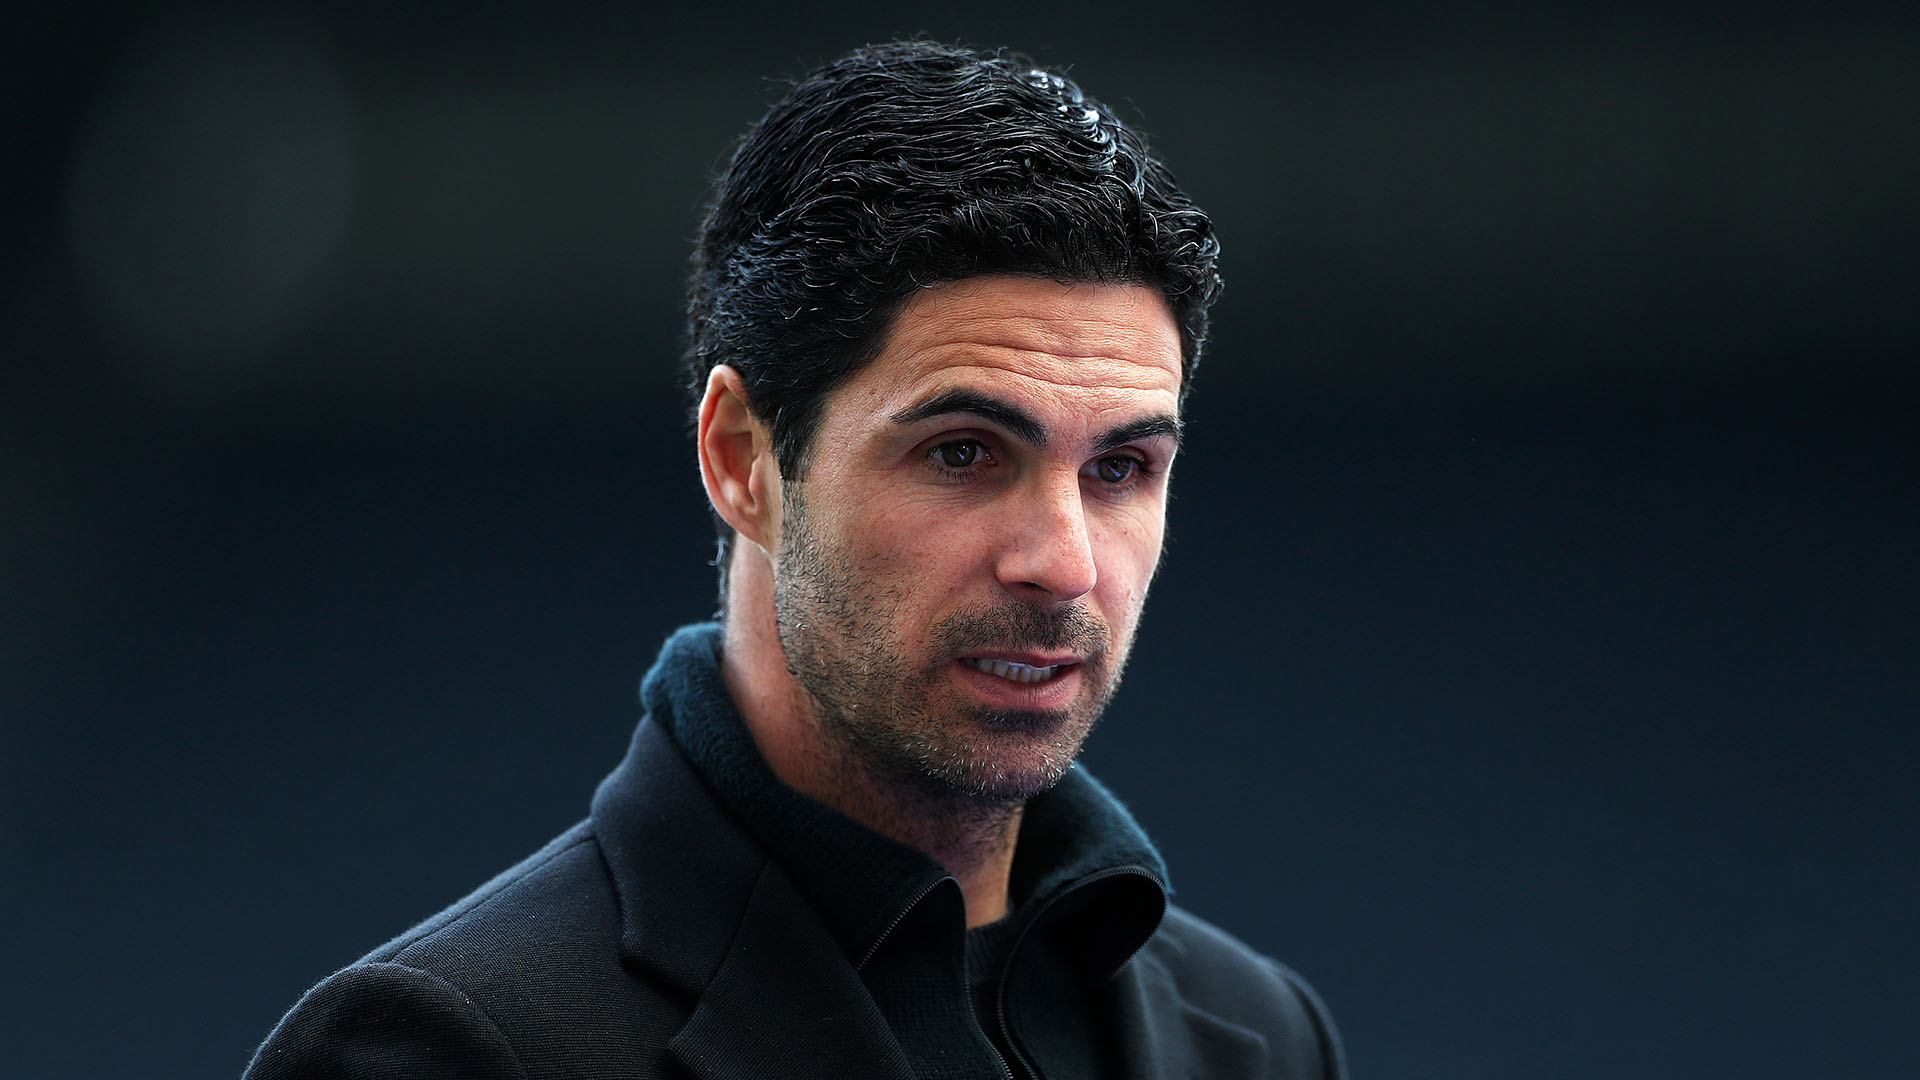 'I still feel very responsible' - Arteta admits he's still hurting after Europa League exit